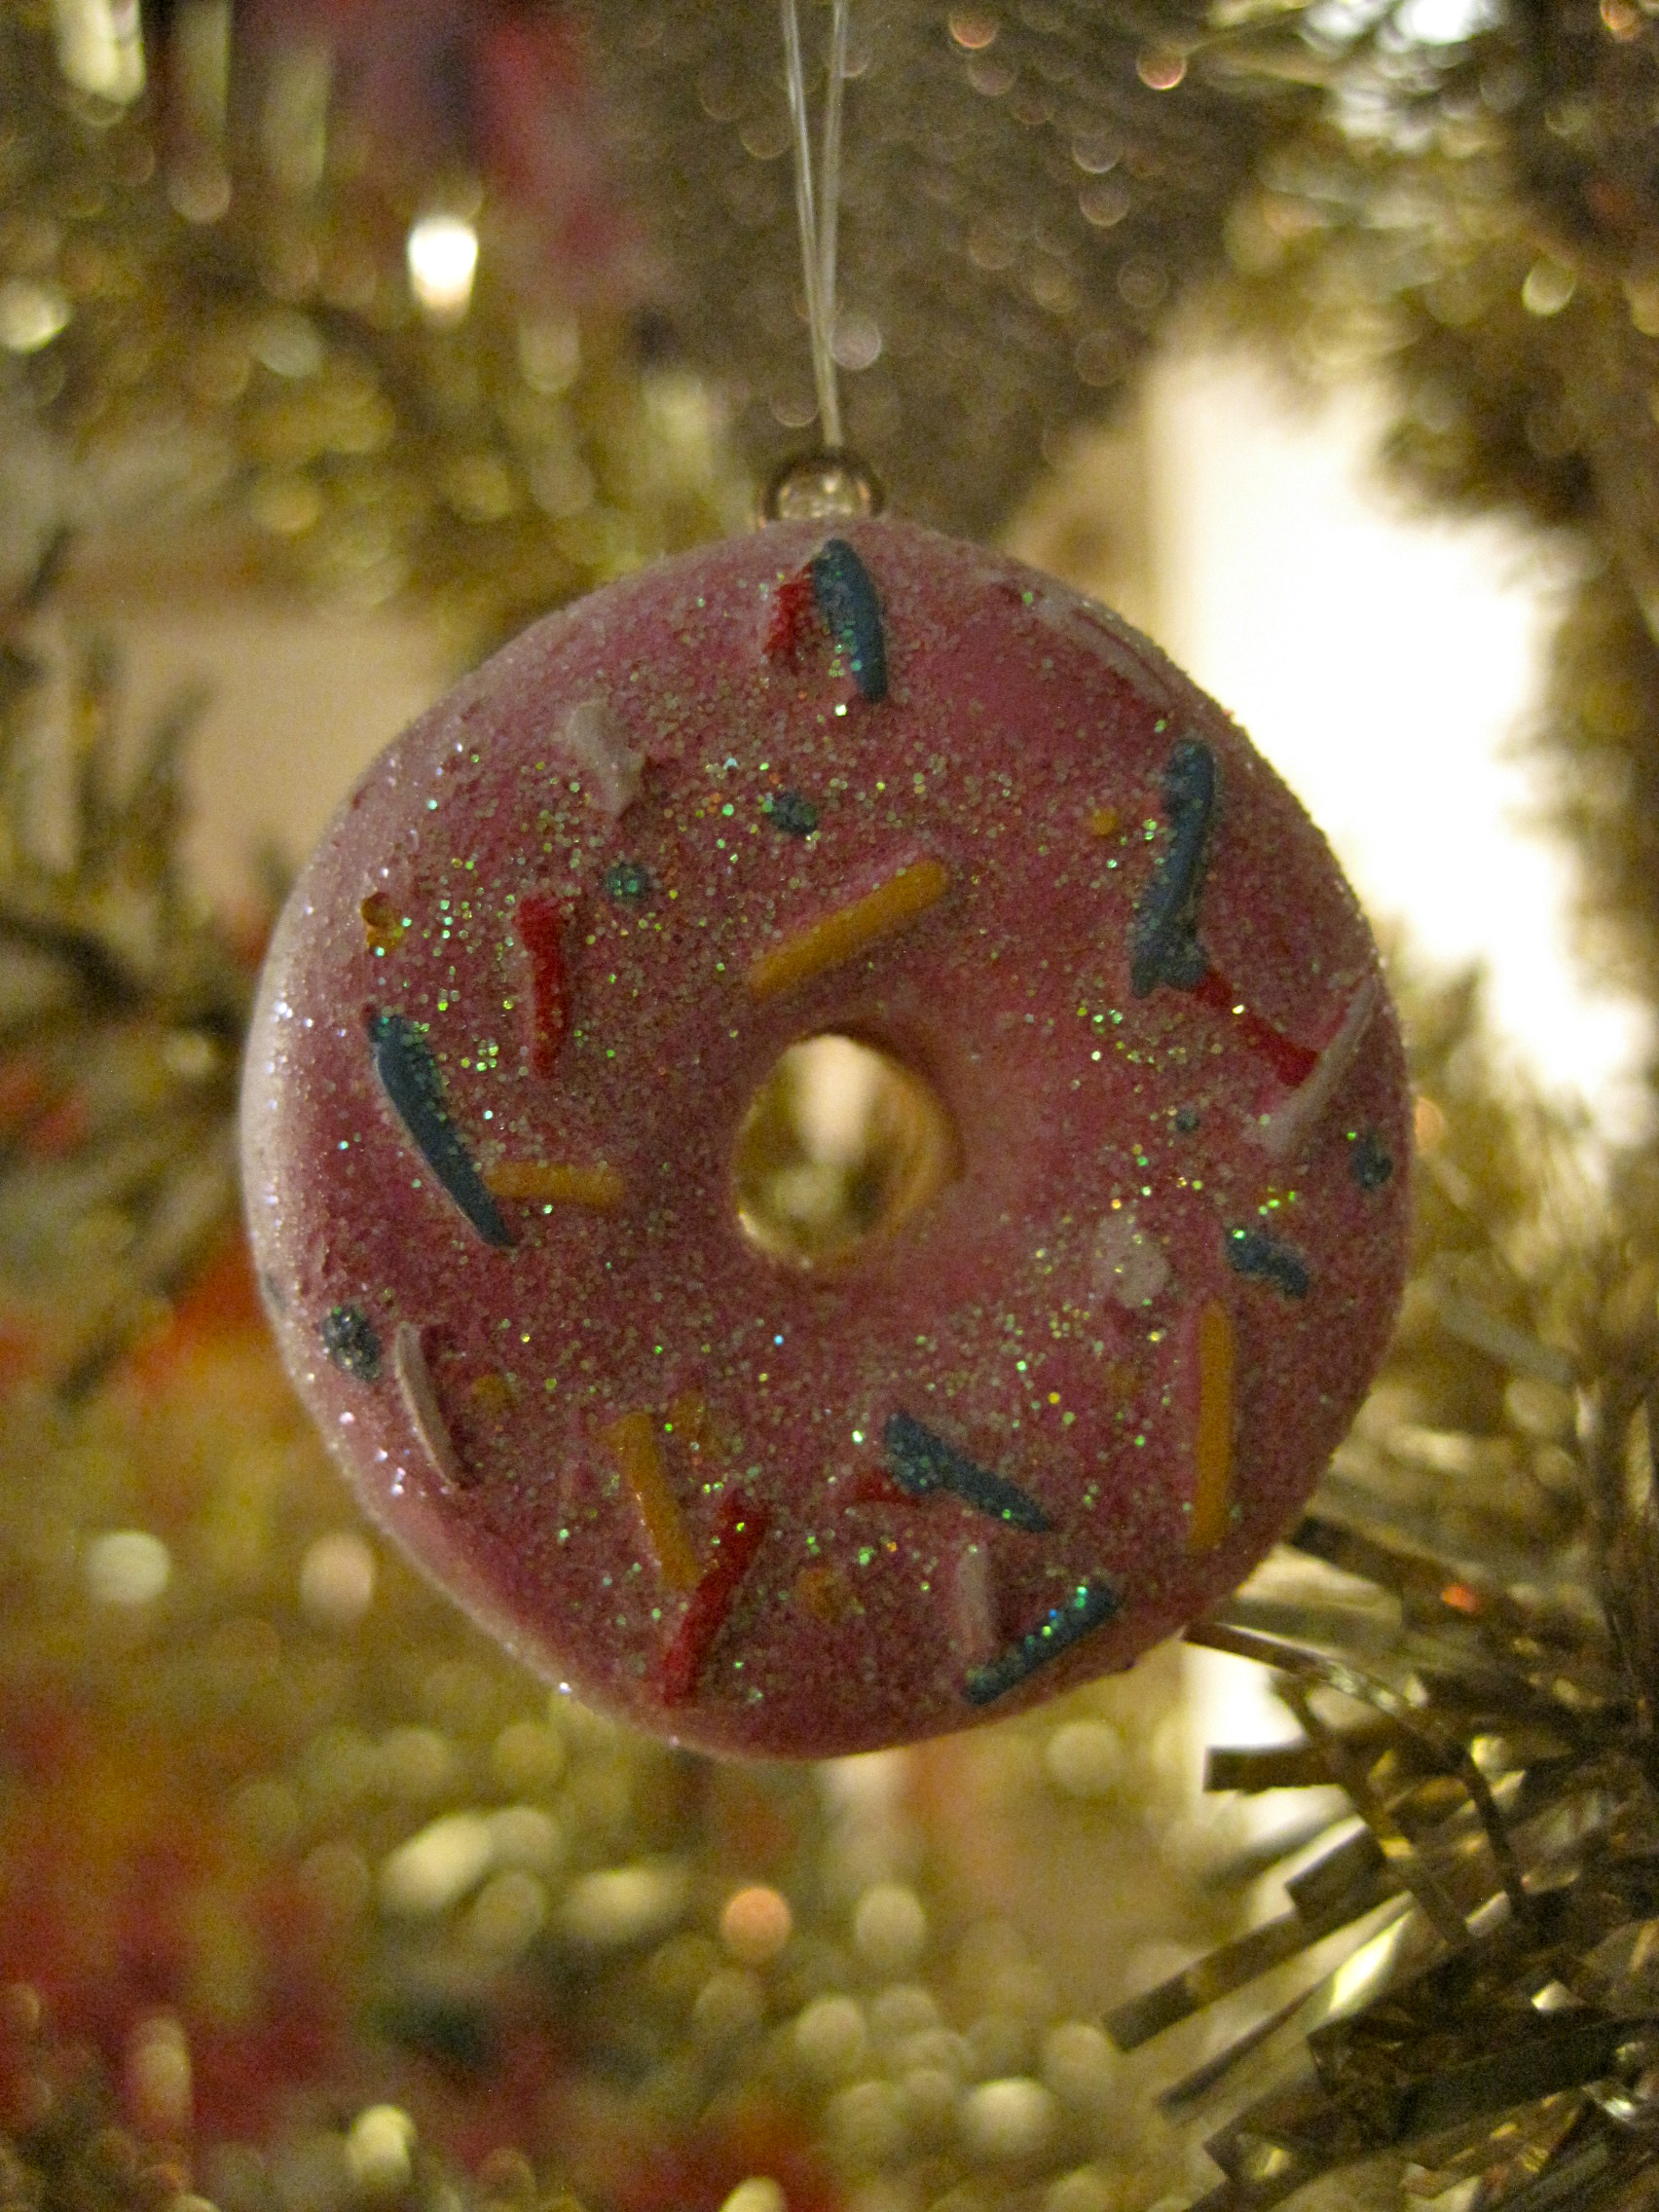 ... year of Donut Soup…this ornament will always remind me…ahhhh